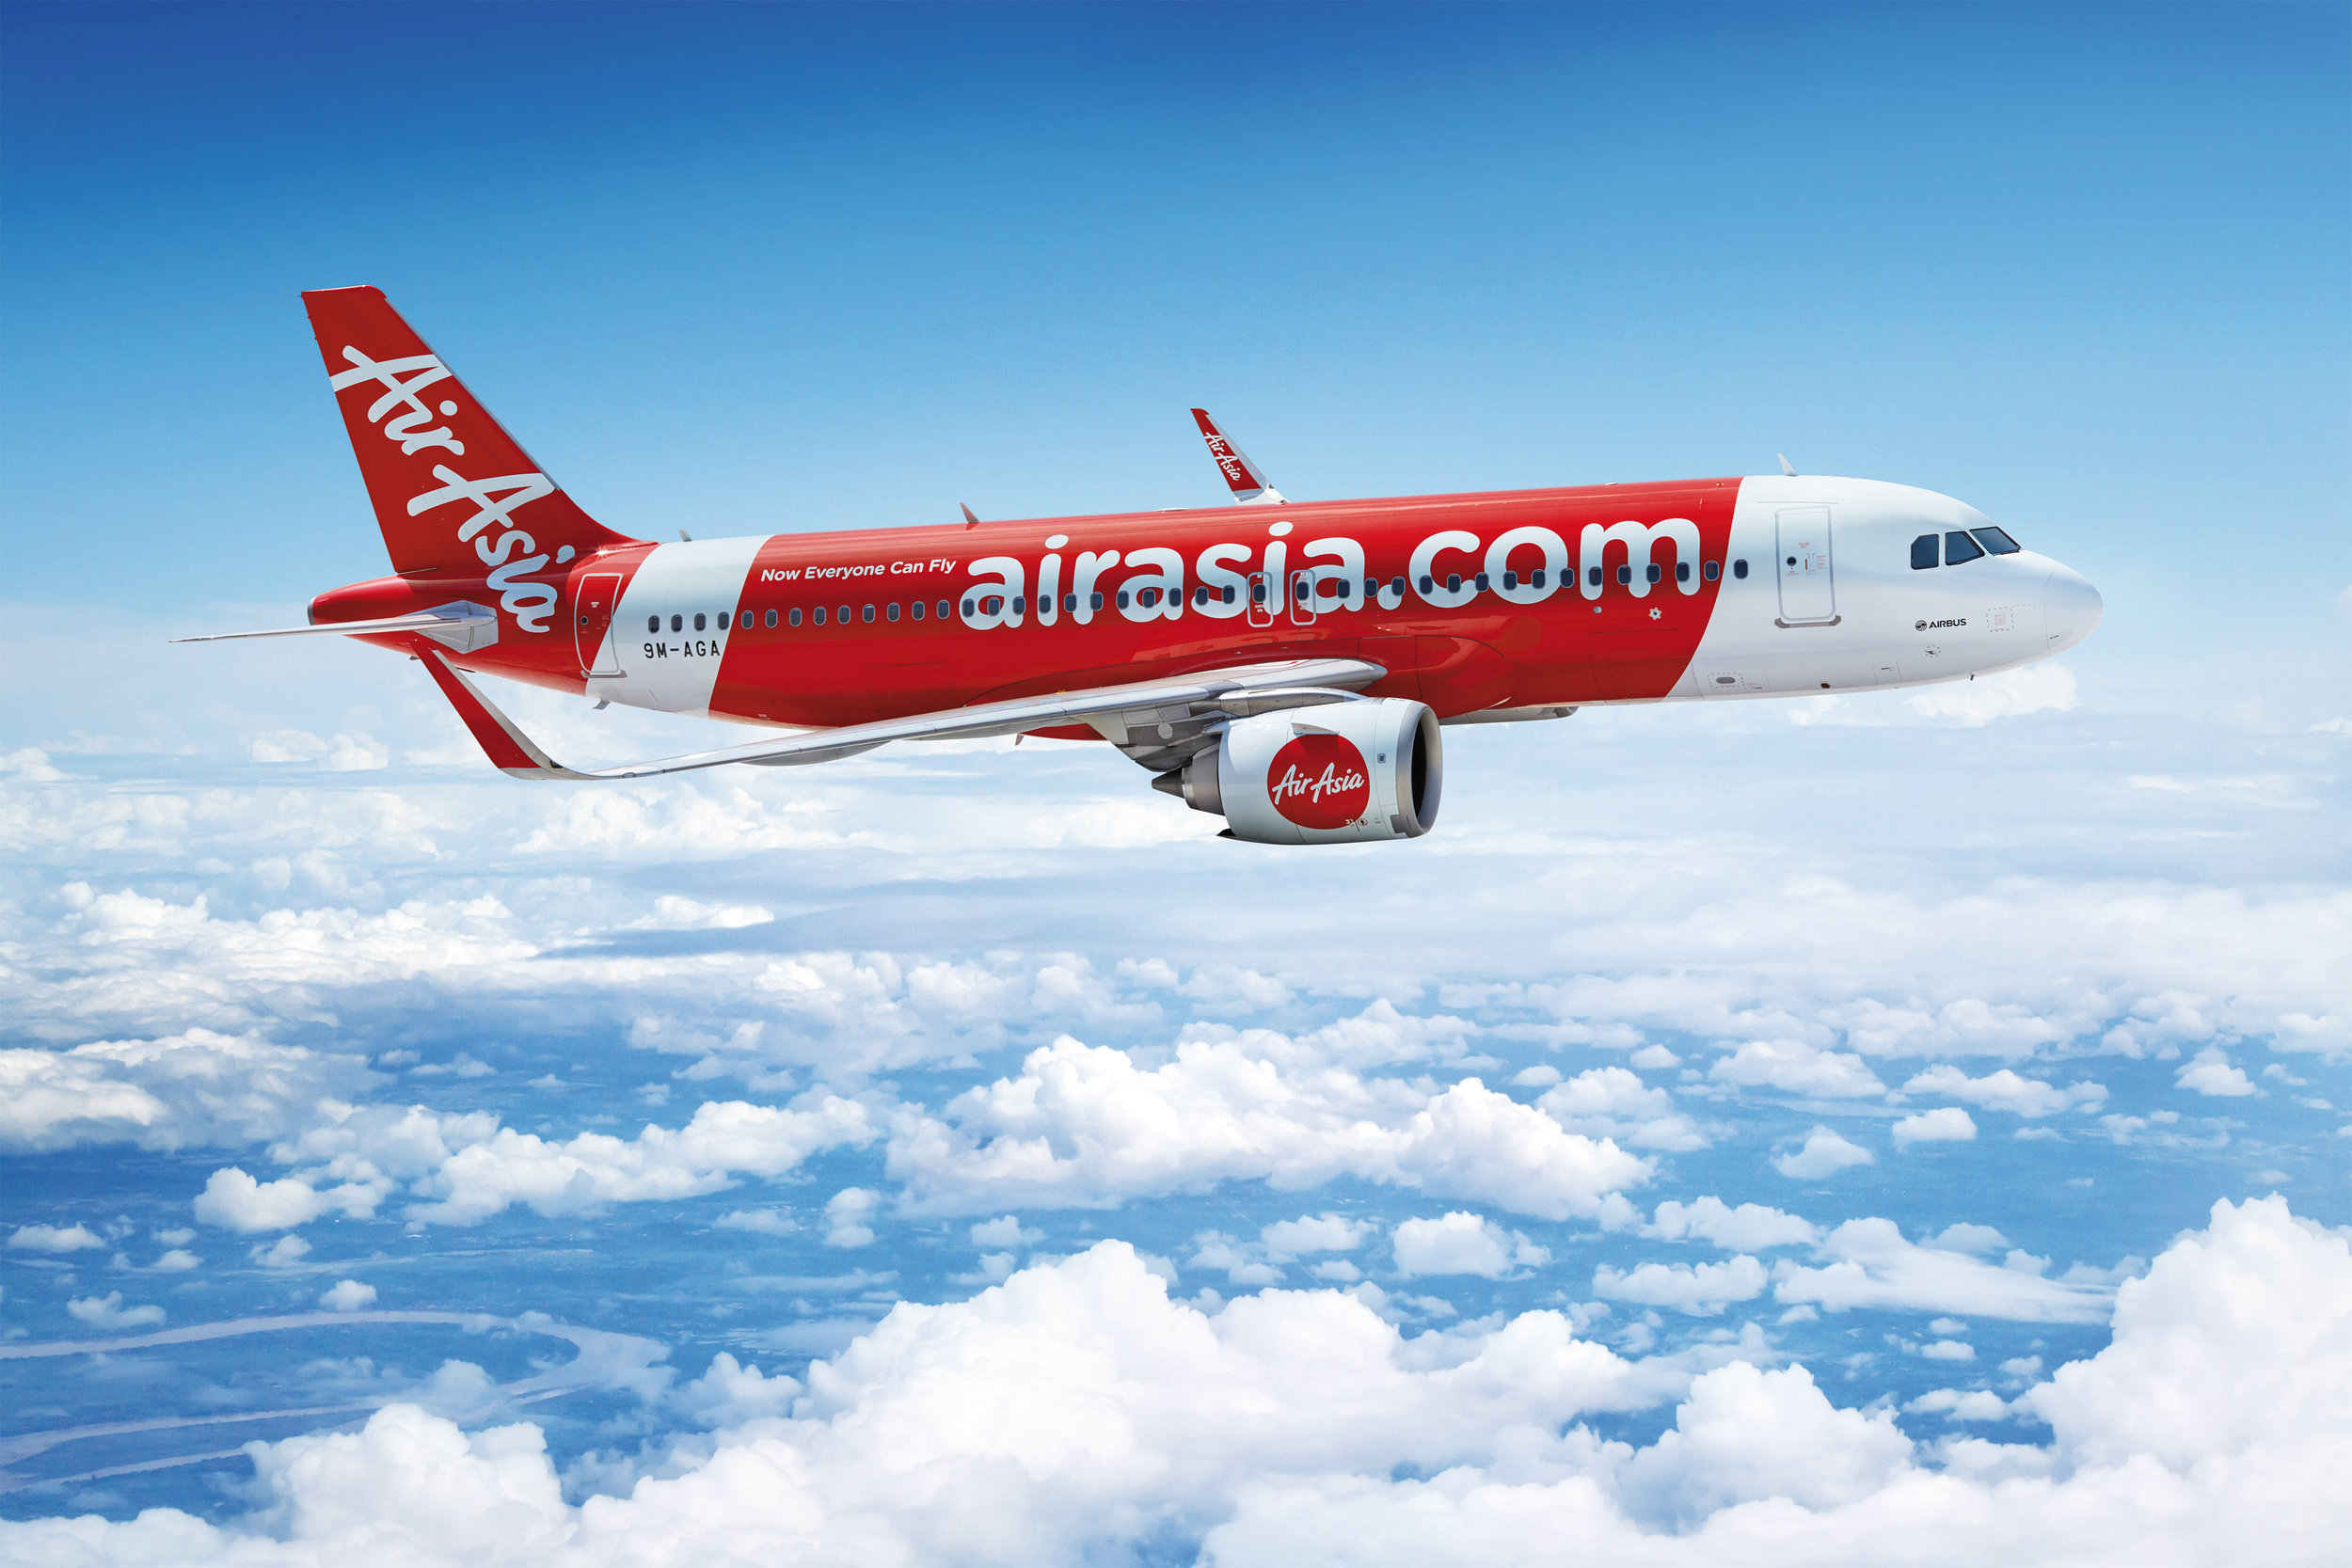 Vaccines roll out in Asean, Asia and globally speeds up world travel recovery - AirAsia Group CEO